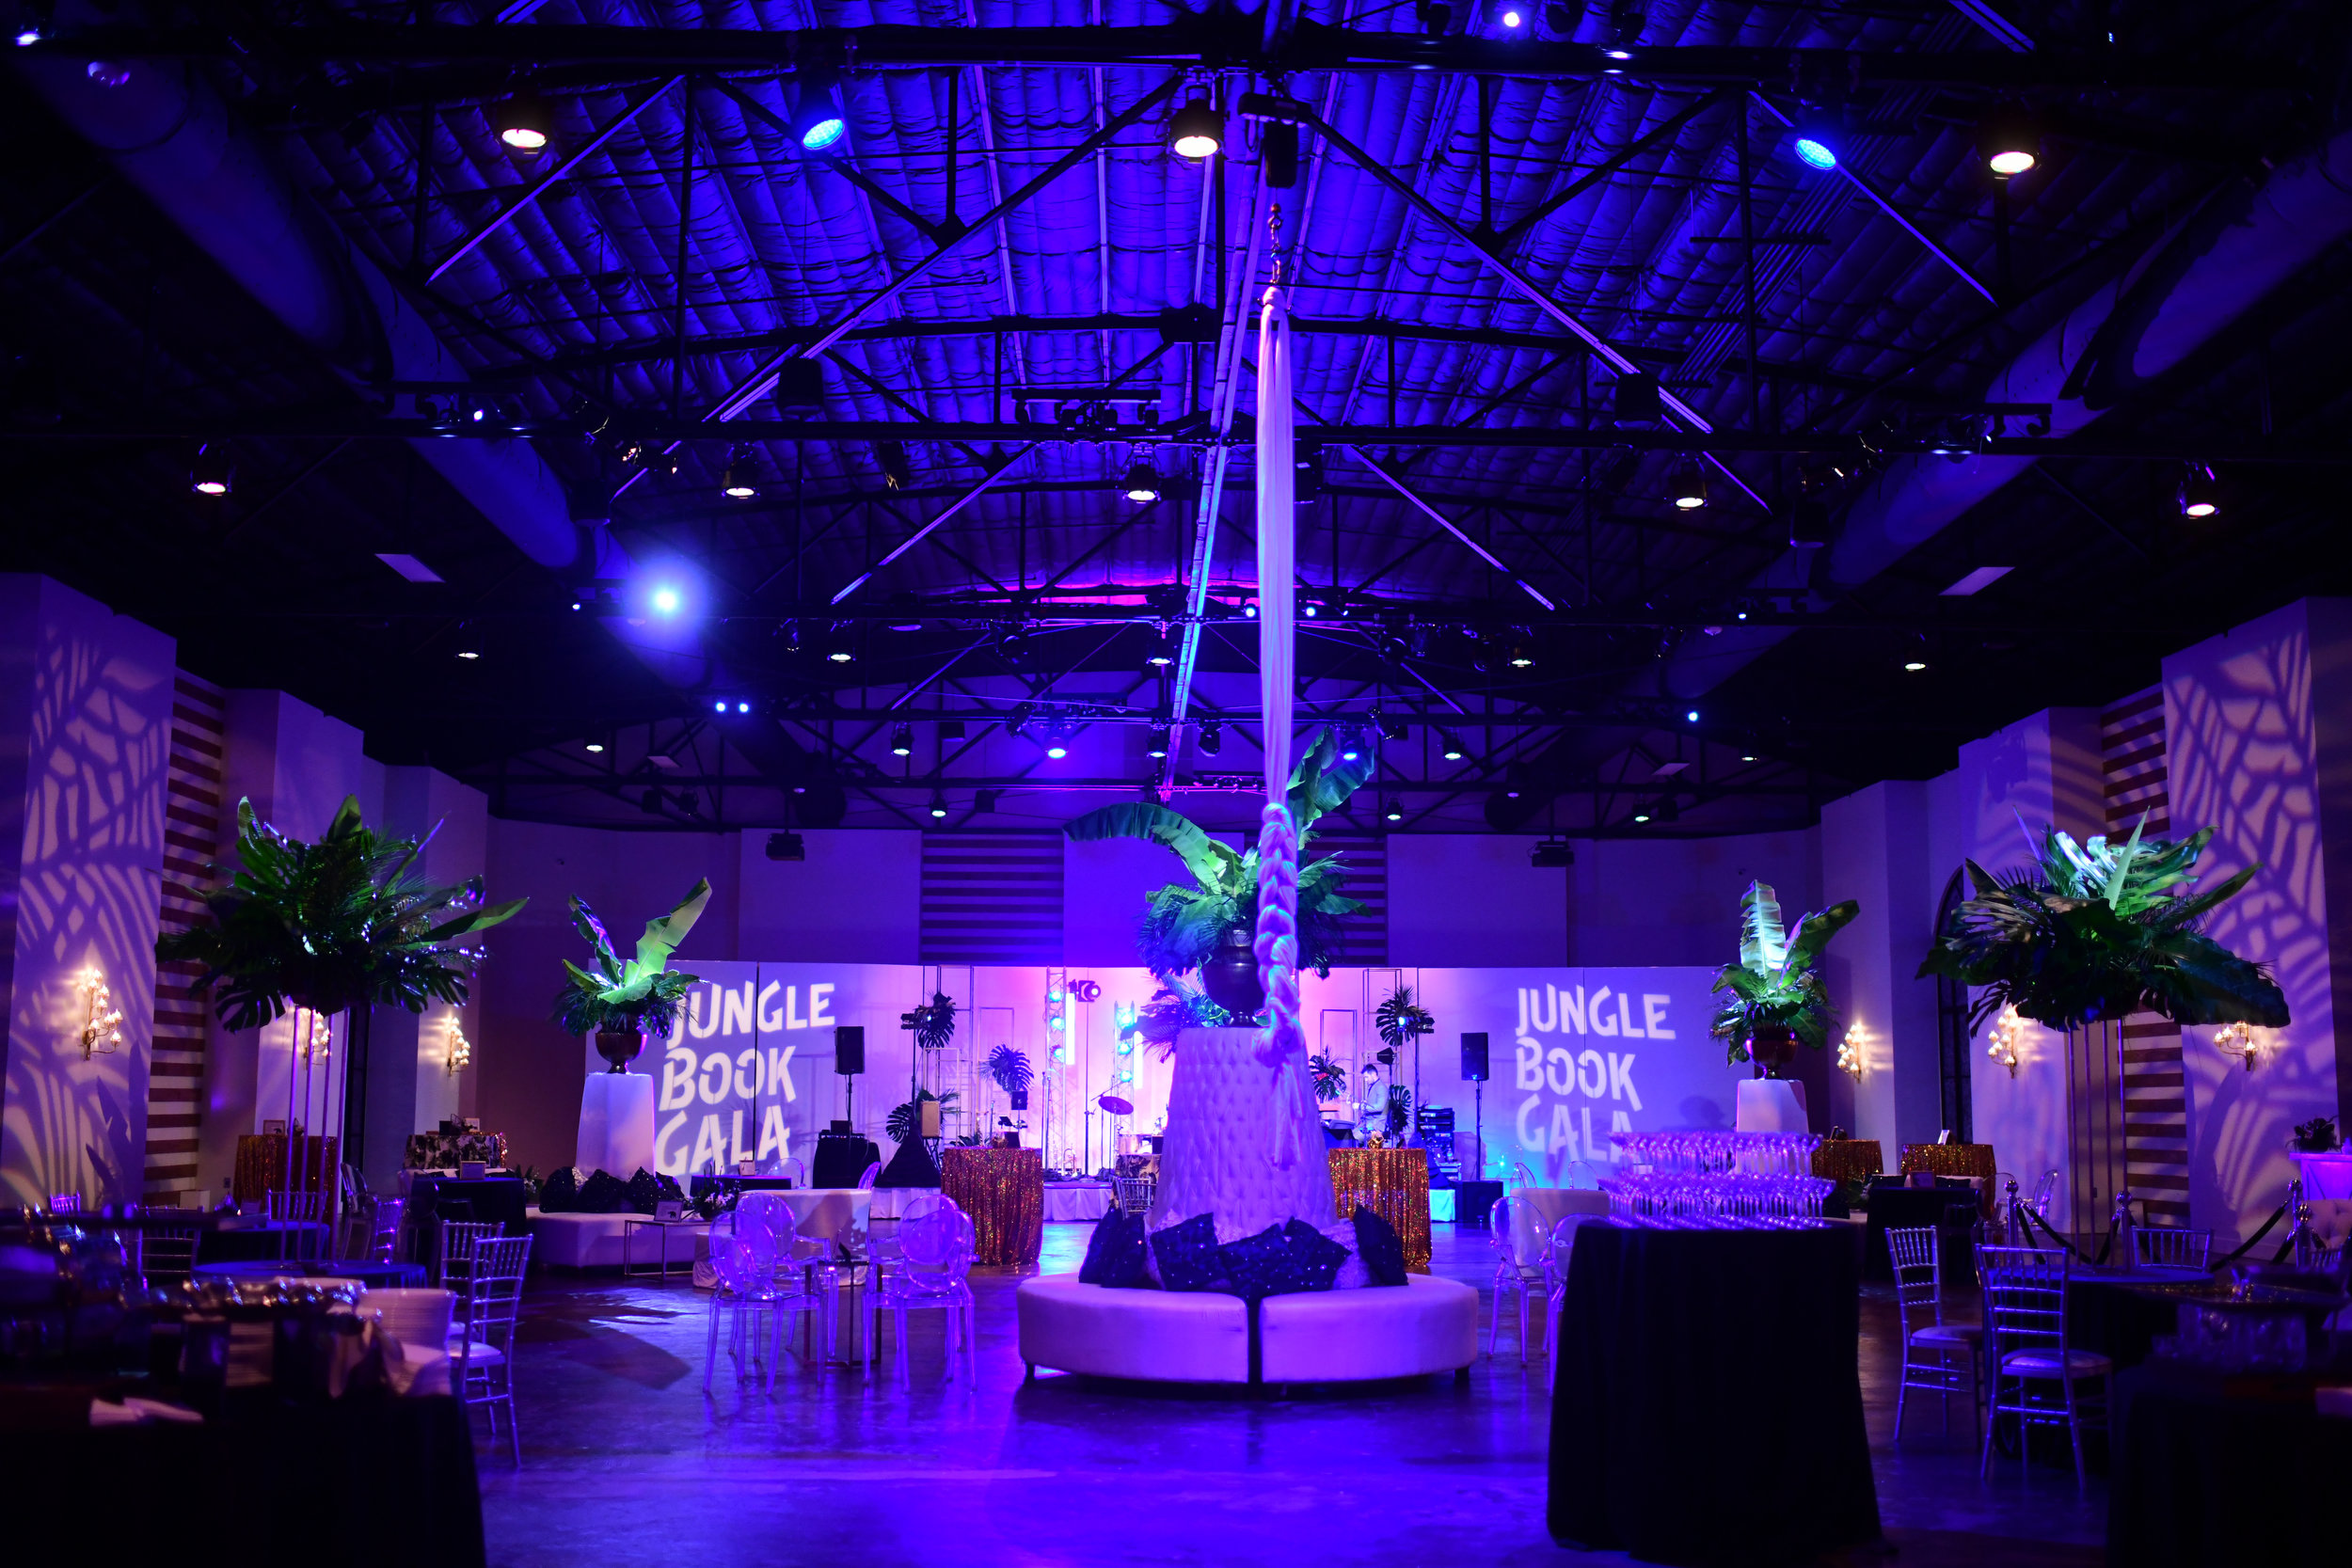 2018 Jungle Book Gala at The Revaire; Photo by Daniel Ortiz.jpg